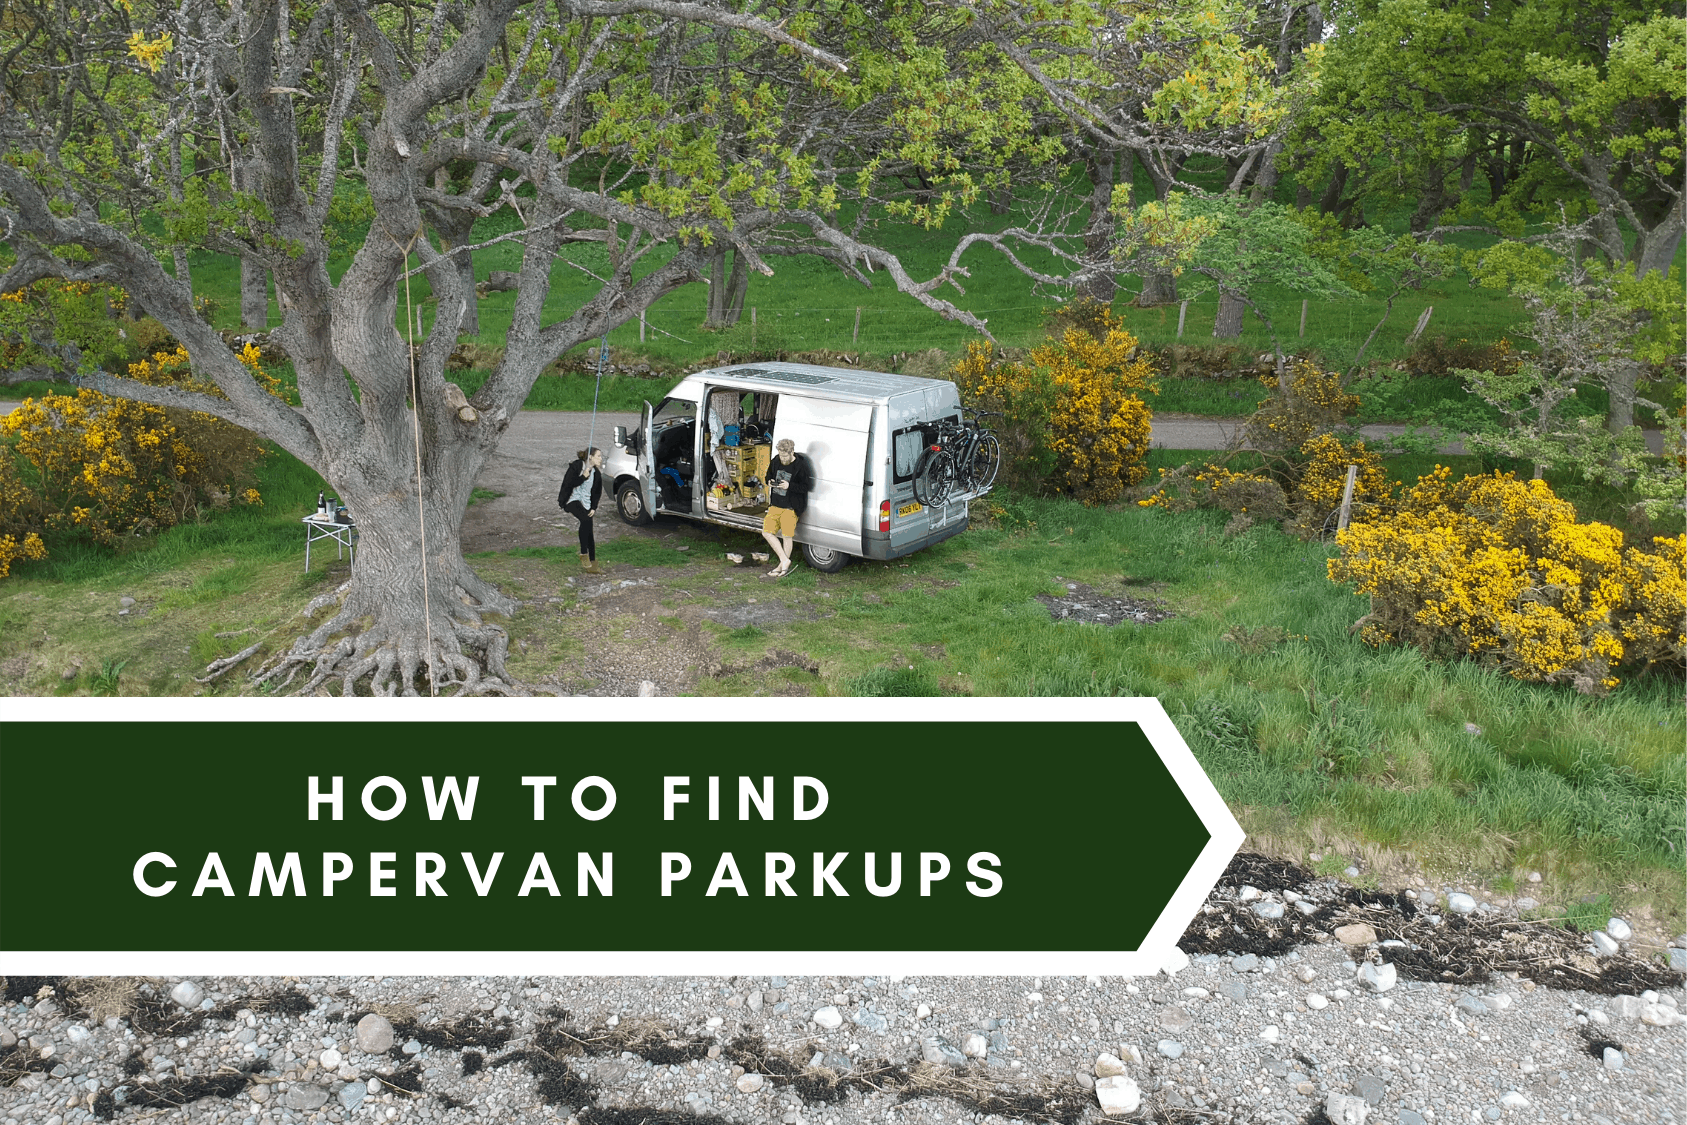 Find Campervan Parkups